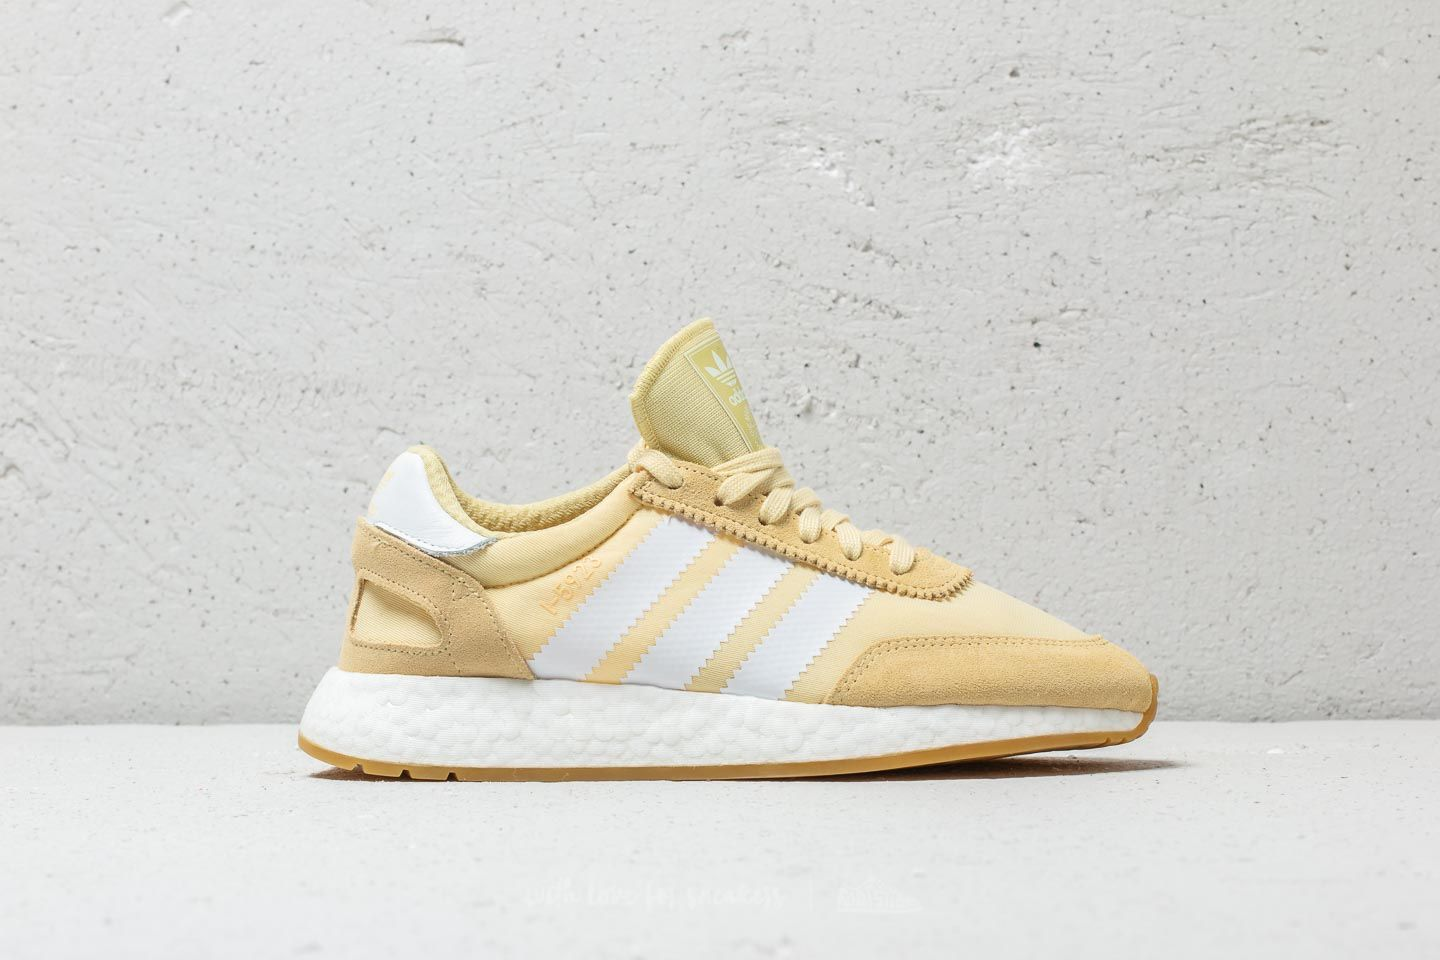 brand new 29d9c 677a3 adidas I-5923 W Clear Yellow  Ftw White  Gum 3 at a great